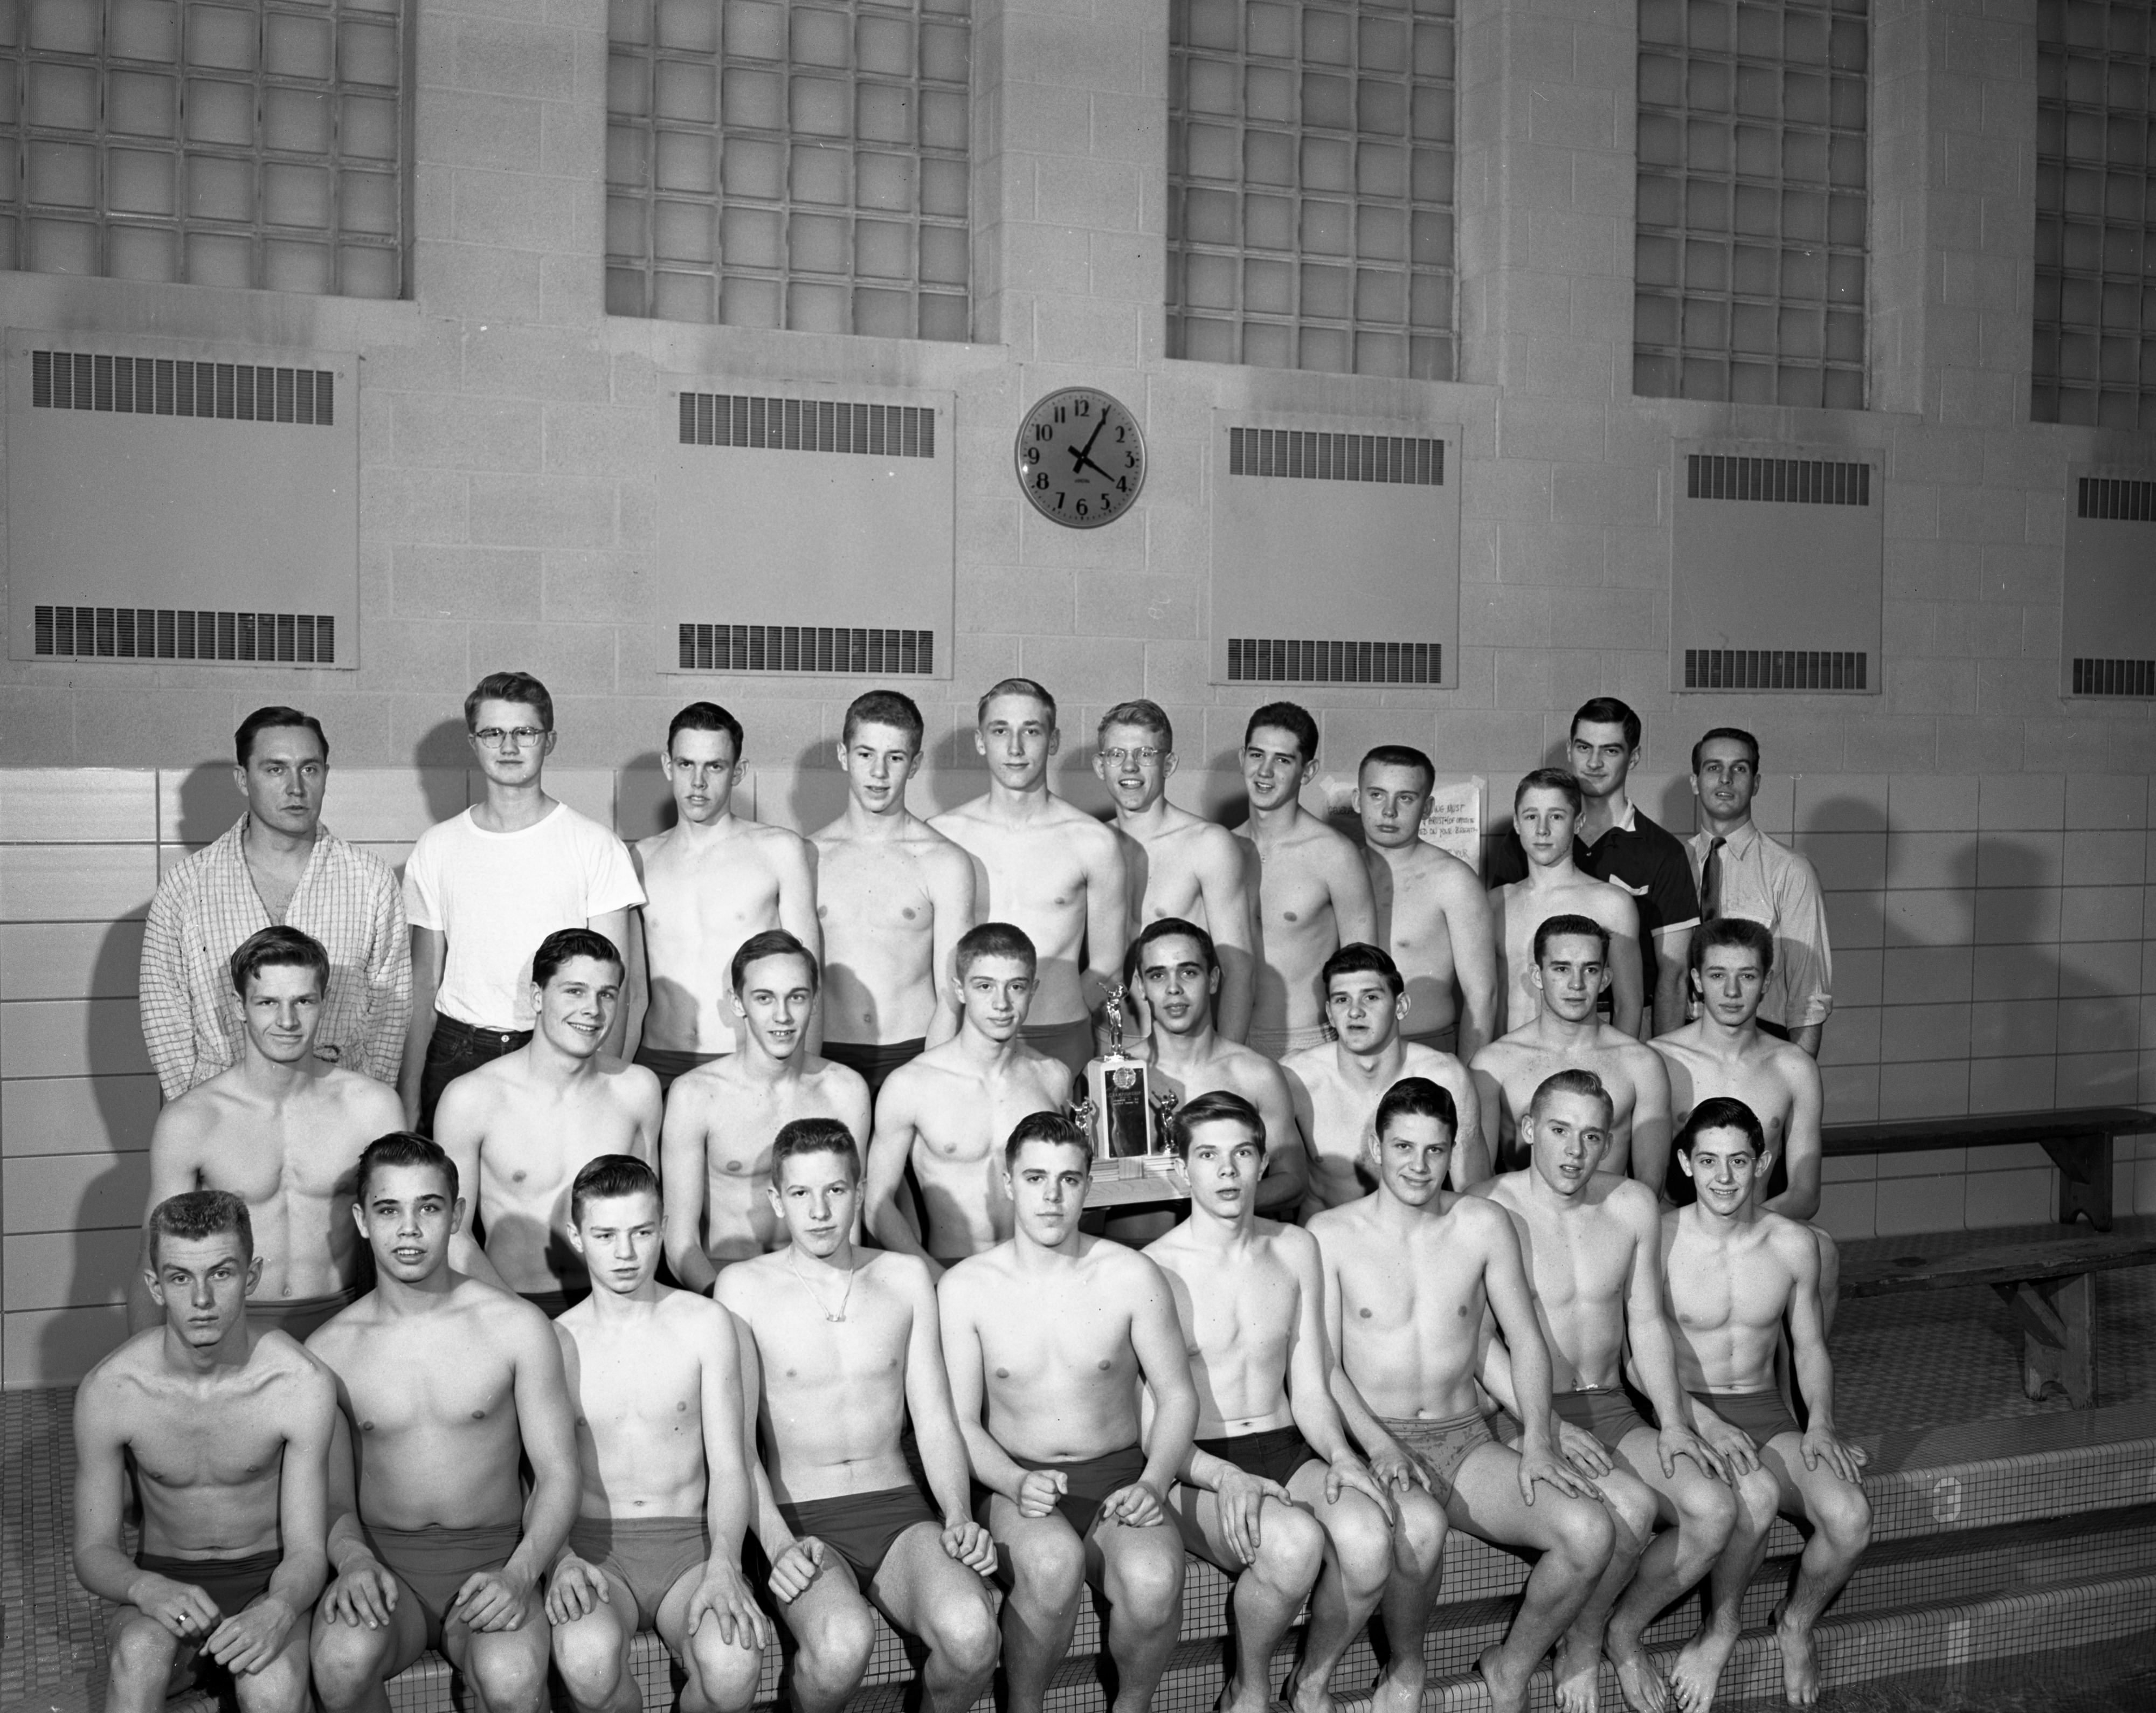 Ann Arbor High School Pioneers Win School's First-Ever Six-A League Championship, March 1956 image